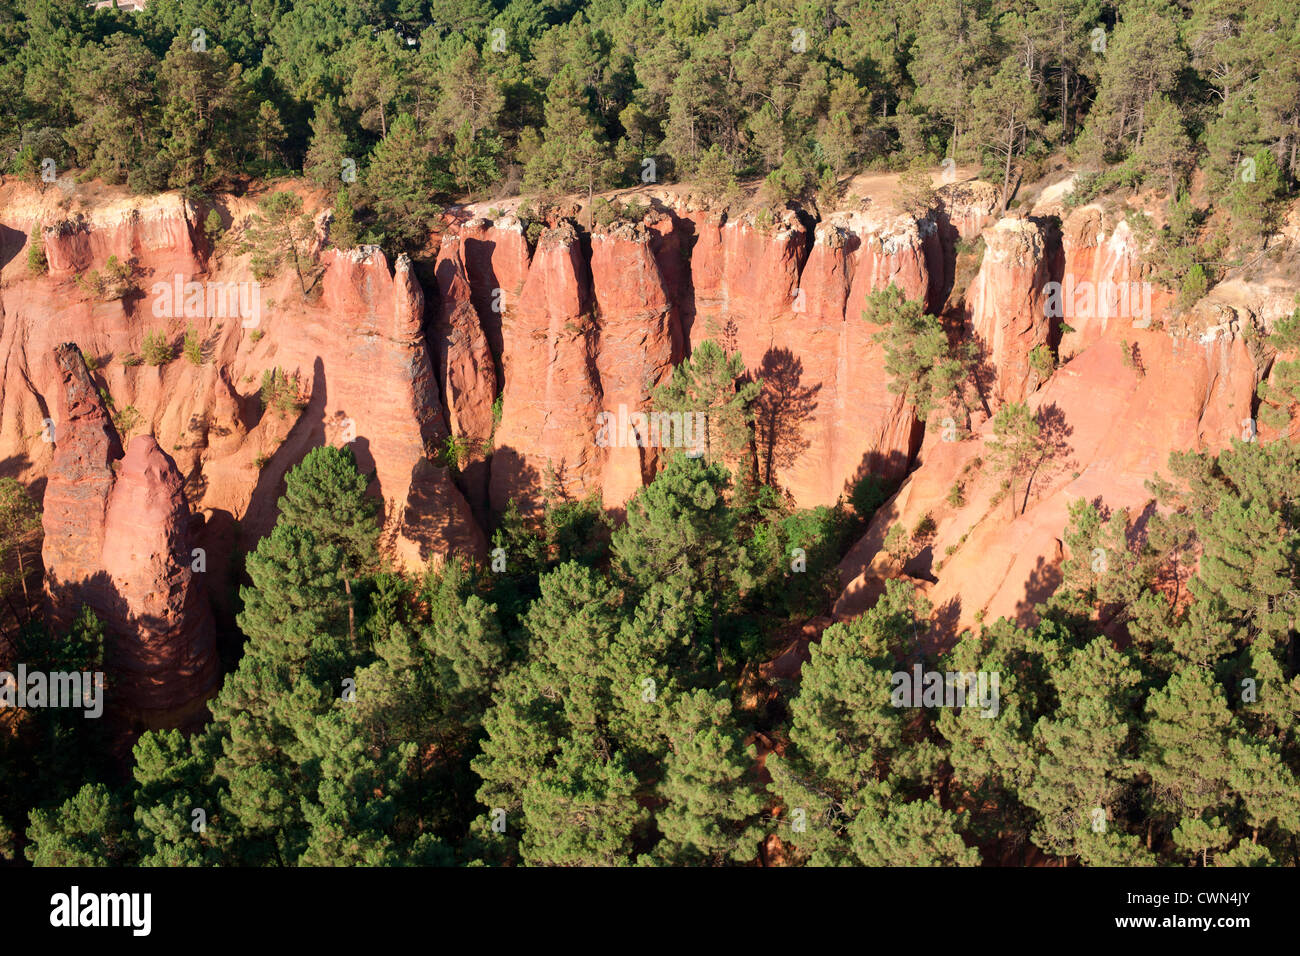 CLAY CLIFF (aerial view). Red ochre cliffs near the village of Roussillon, Lubéron, Vaucluse, Provence, France. - Stock Image